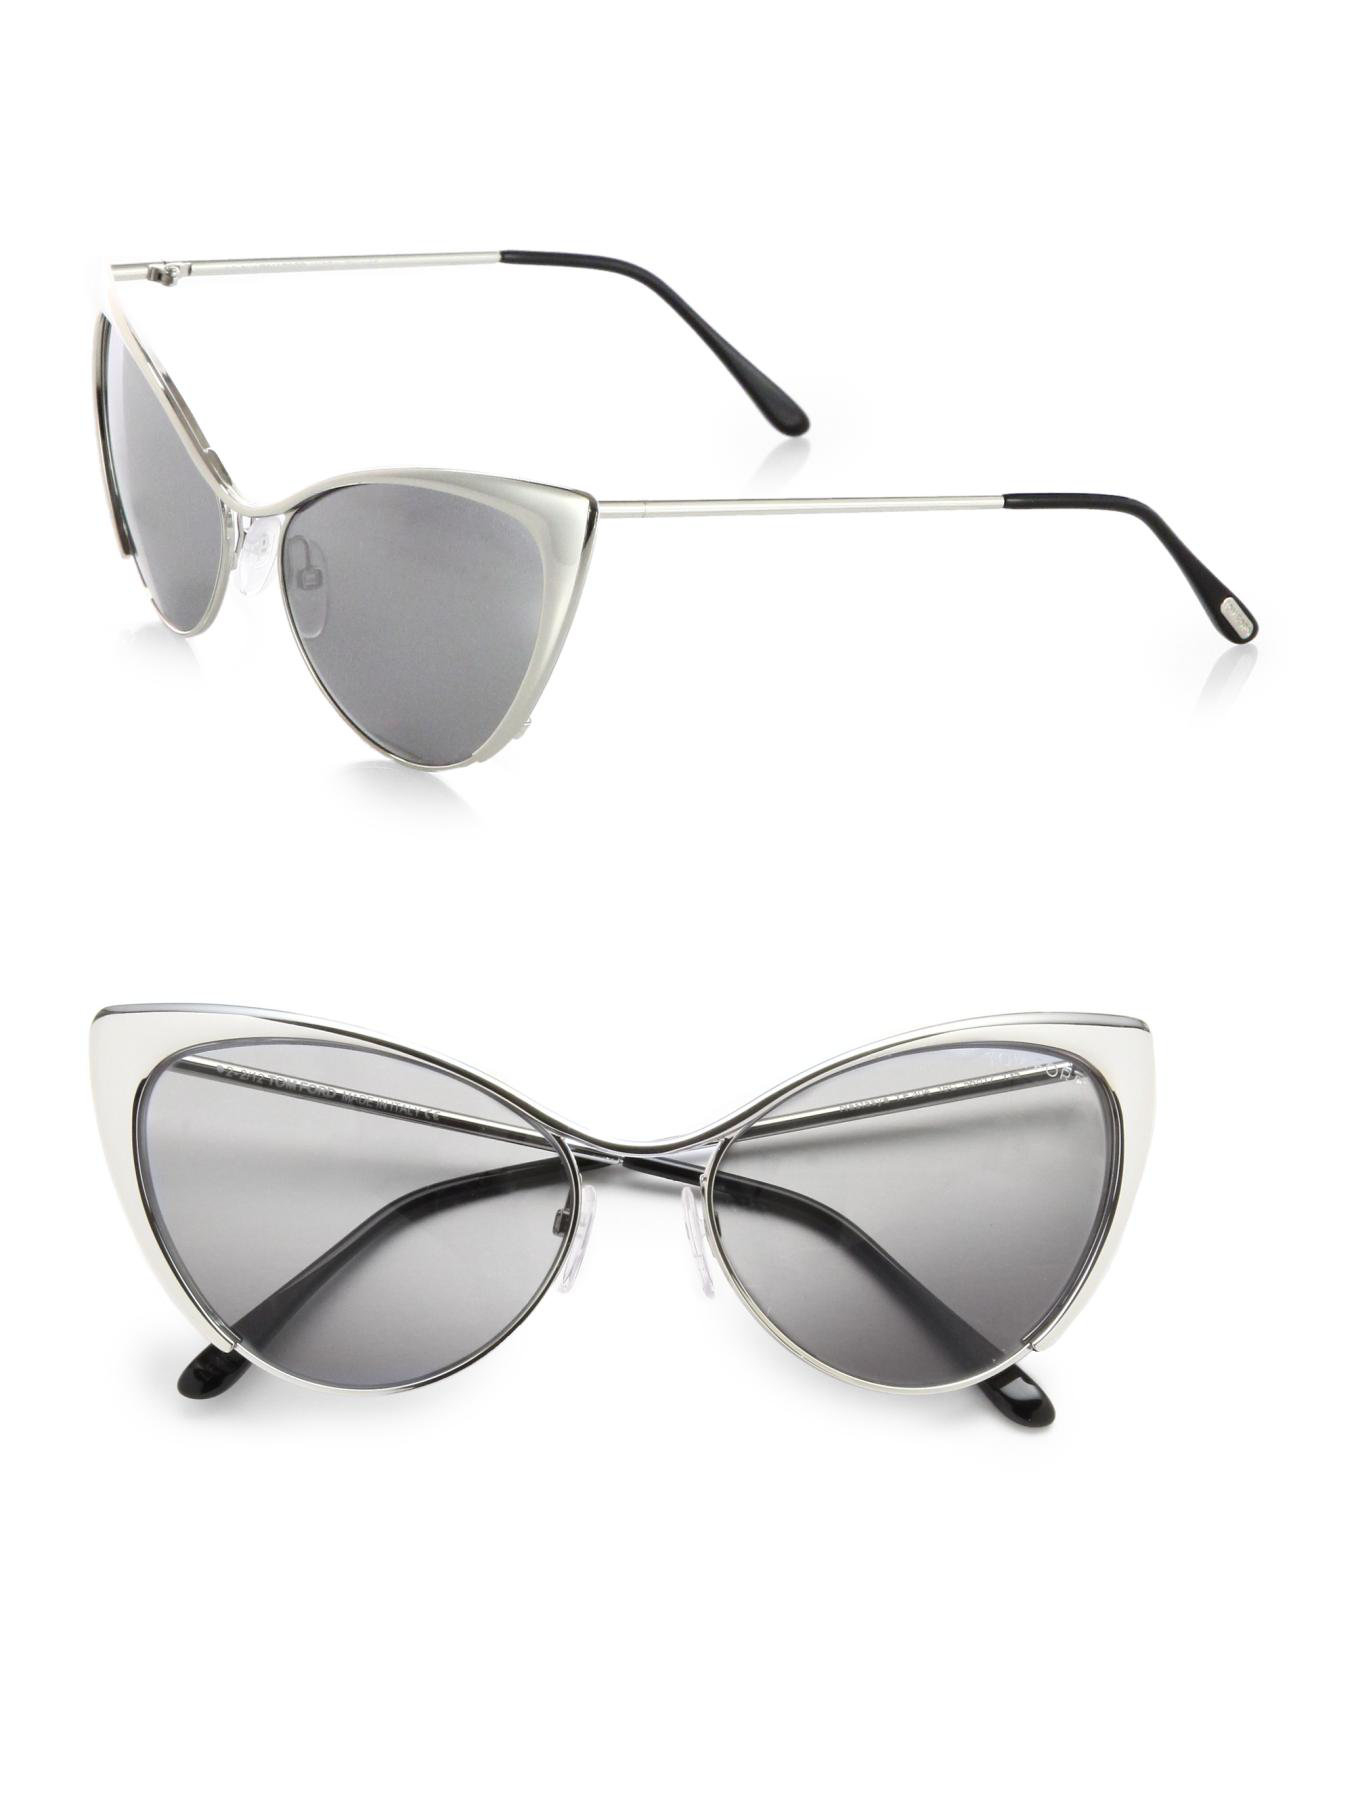 d366f5b1a69c Gallery. Previously sold at: Saks Fifth Avenue · Women's Tom Ford Cat Eye  Women's Leopard Sunglasses ...